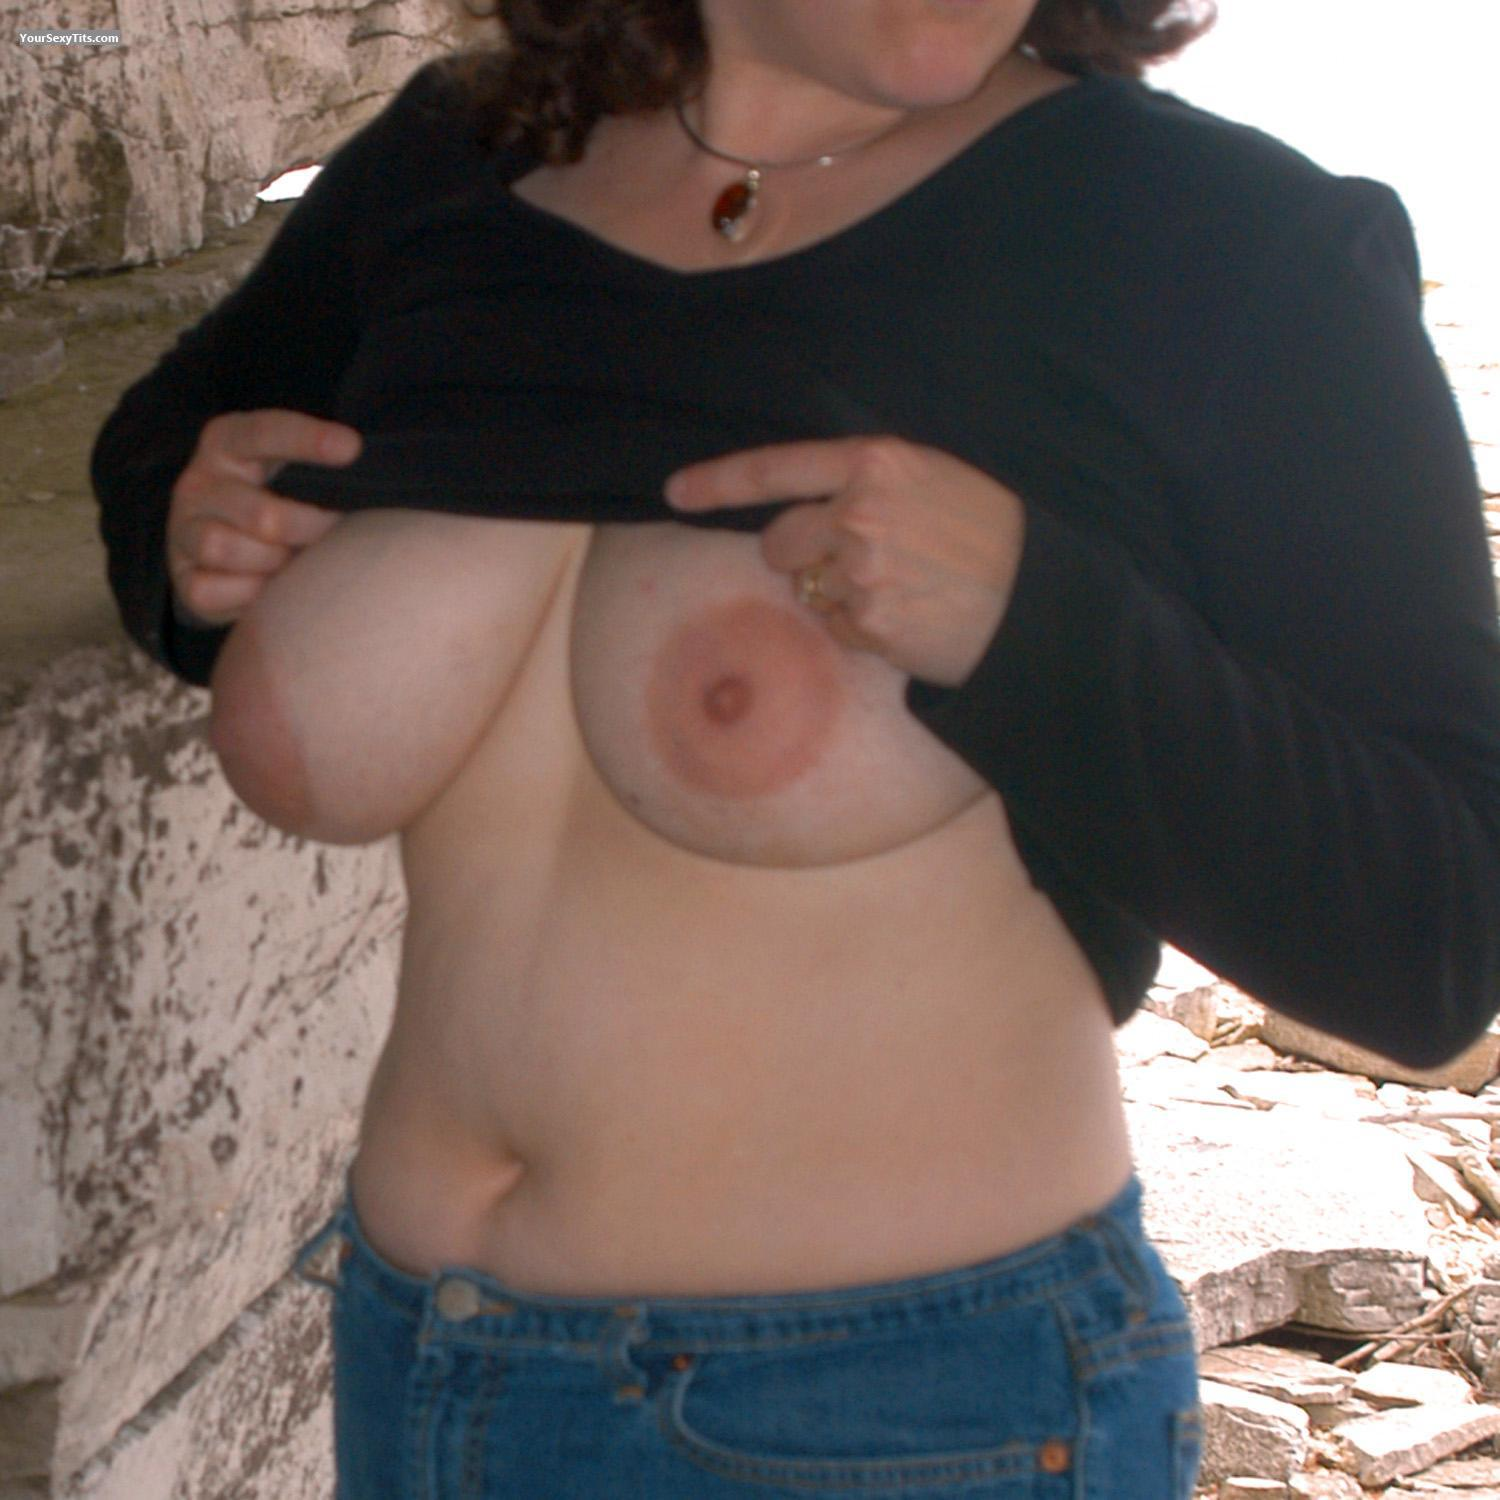 Tit Flash: Very Big Tits - Grace from United States